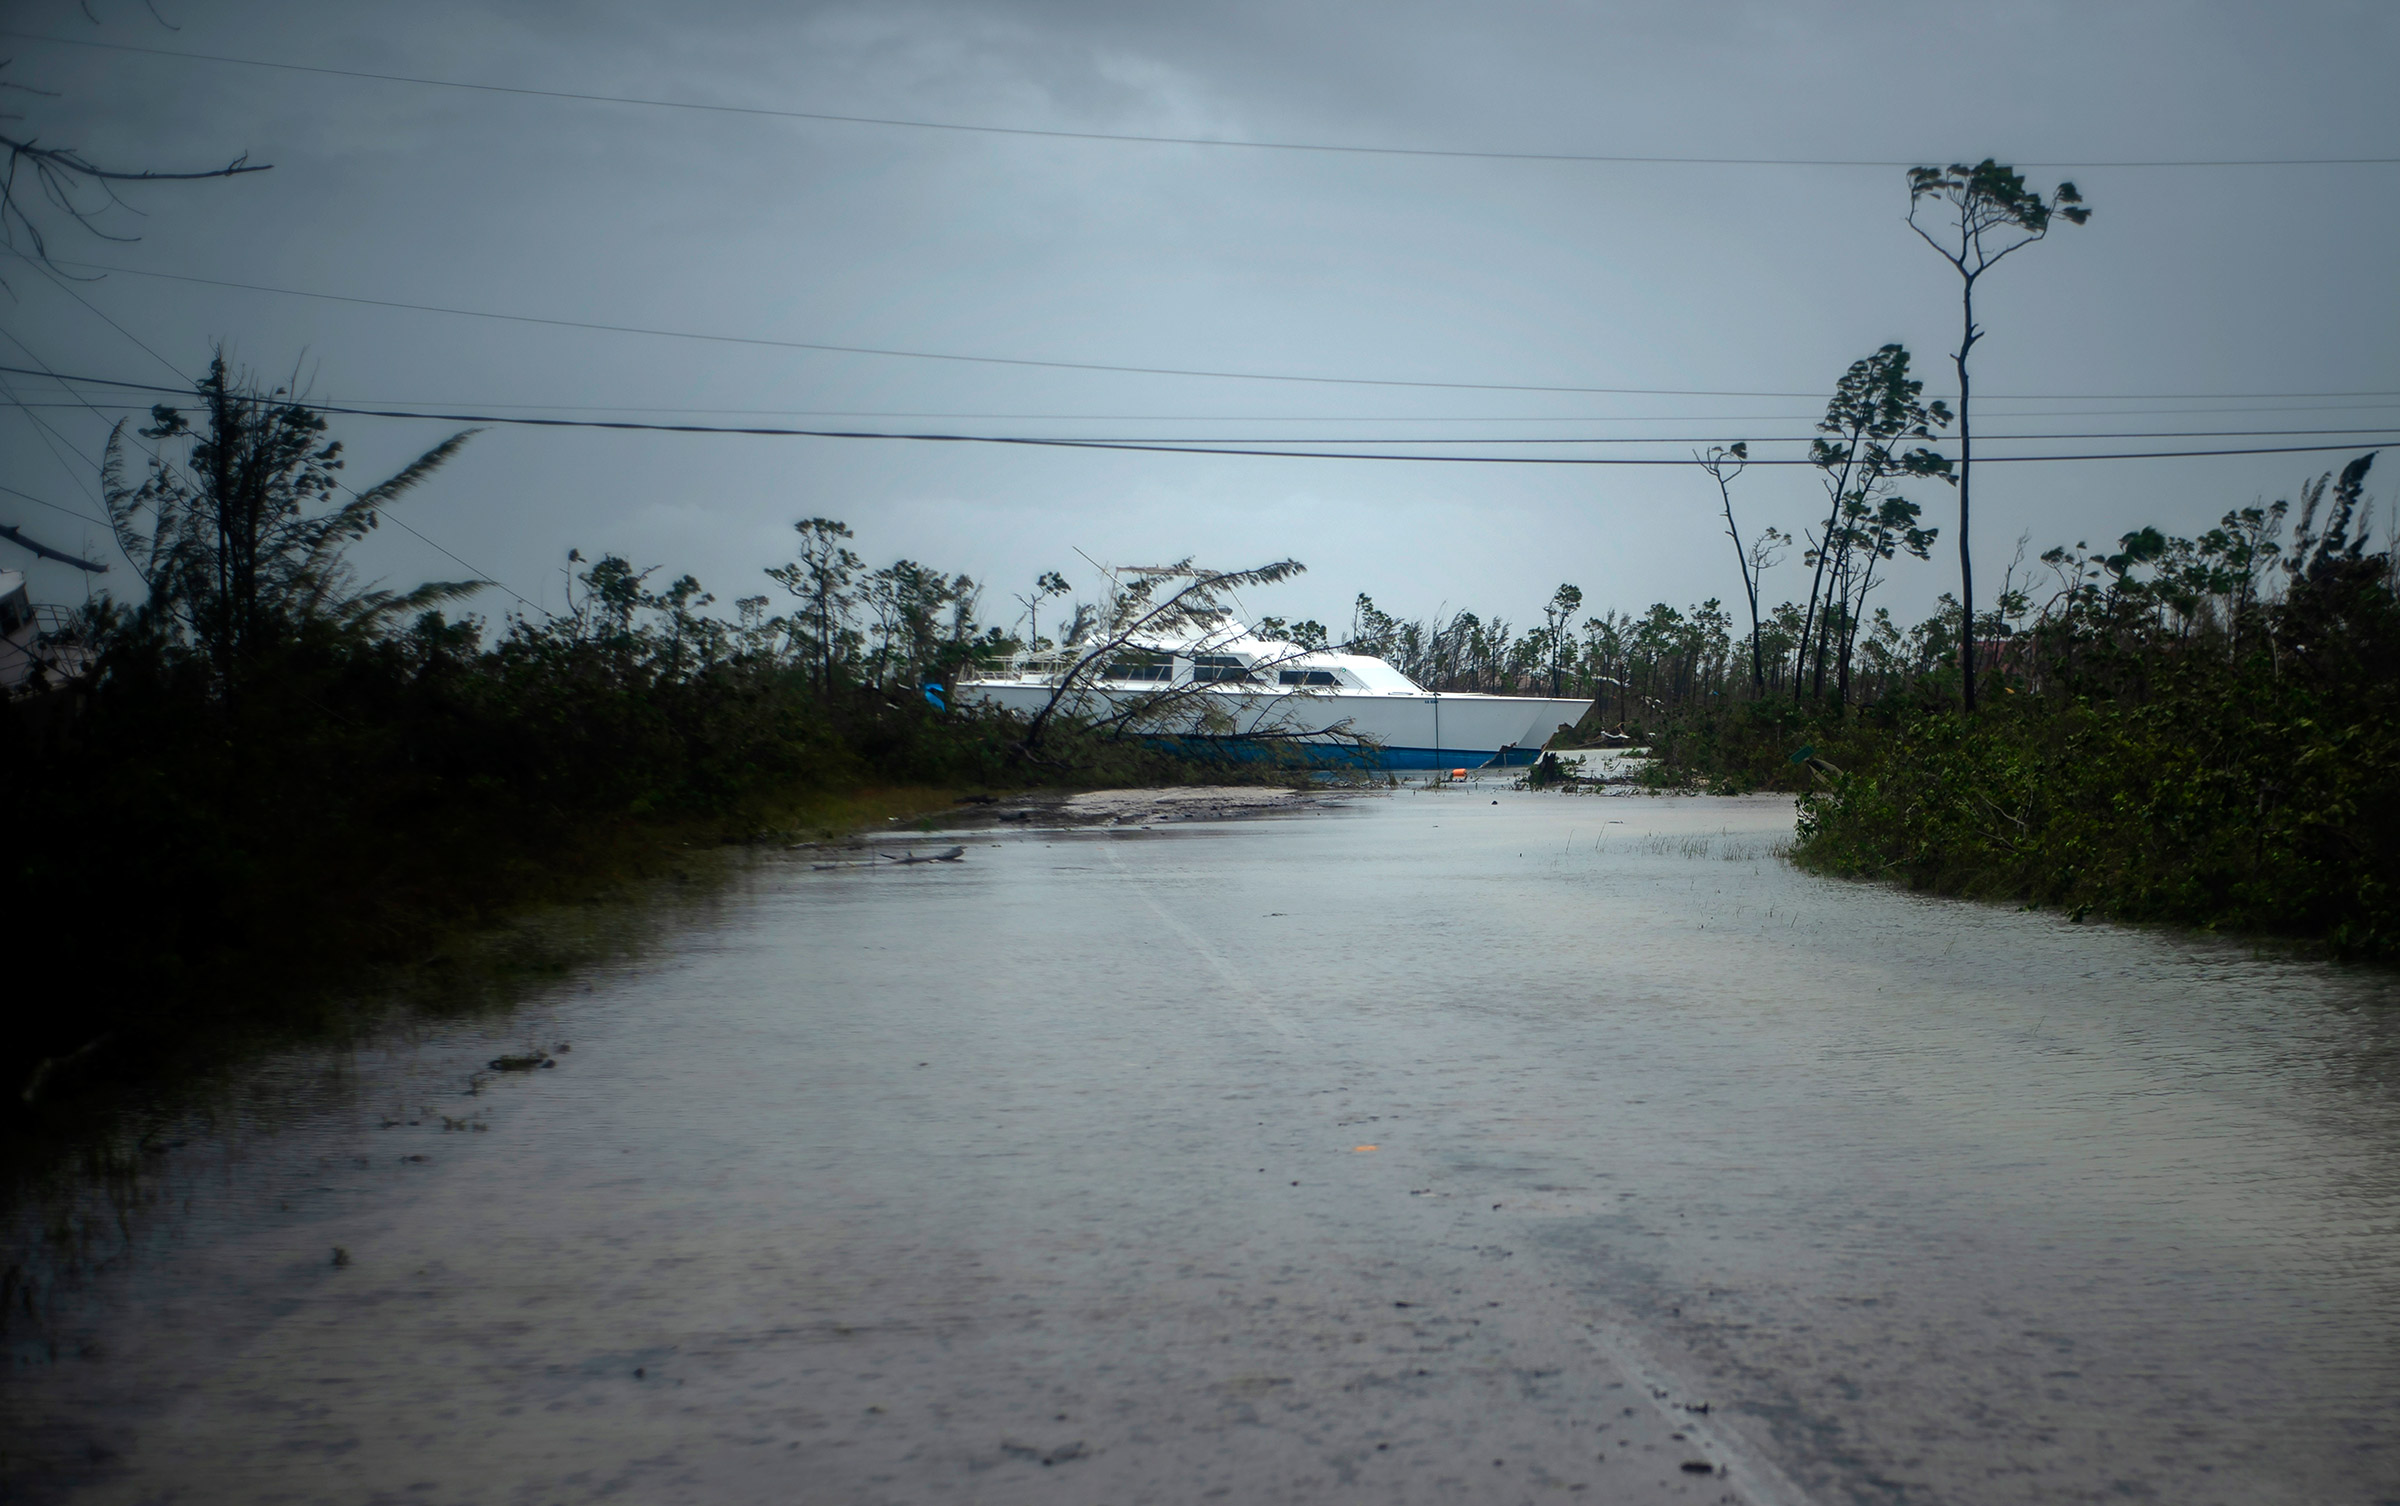 A catamaran thrown onshore by the hurricane lies stranded near a highway close to Freeport, Grand Bahama, Bahamas, on Sept. 3, 2019.